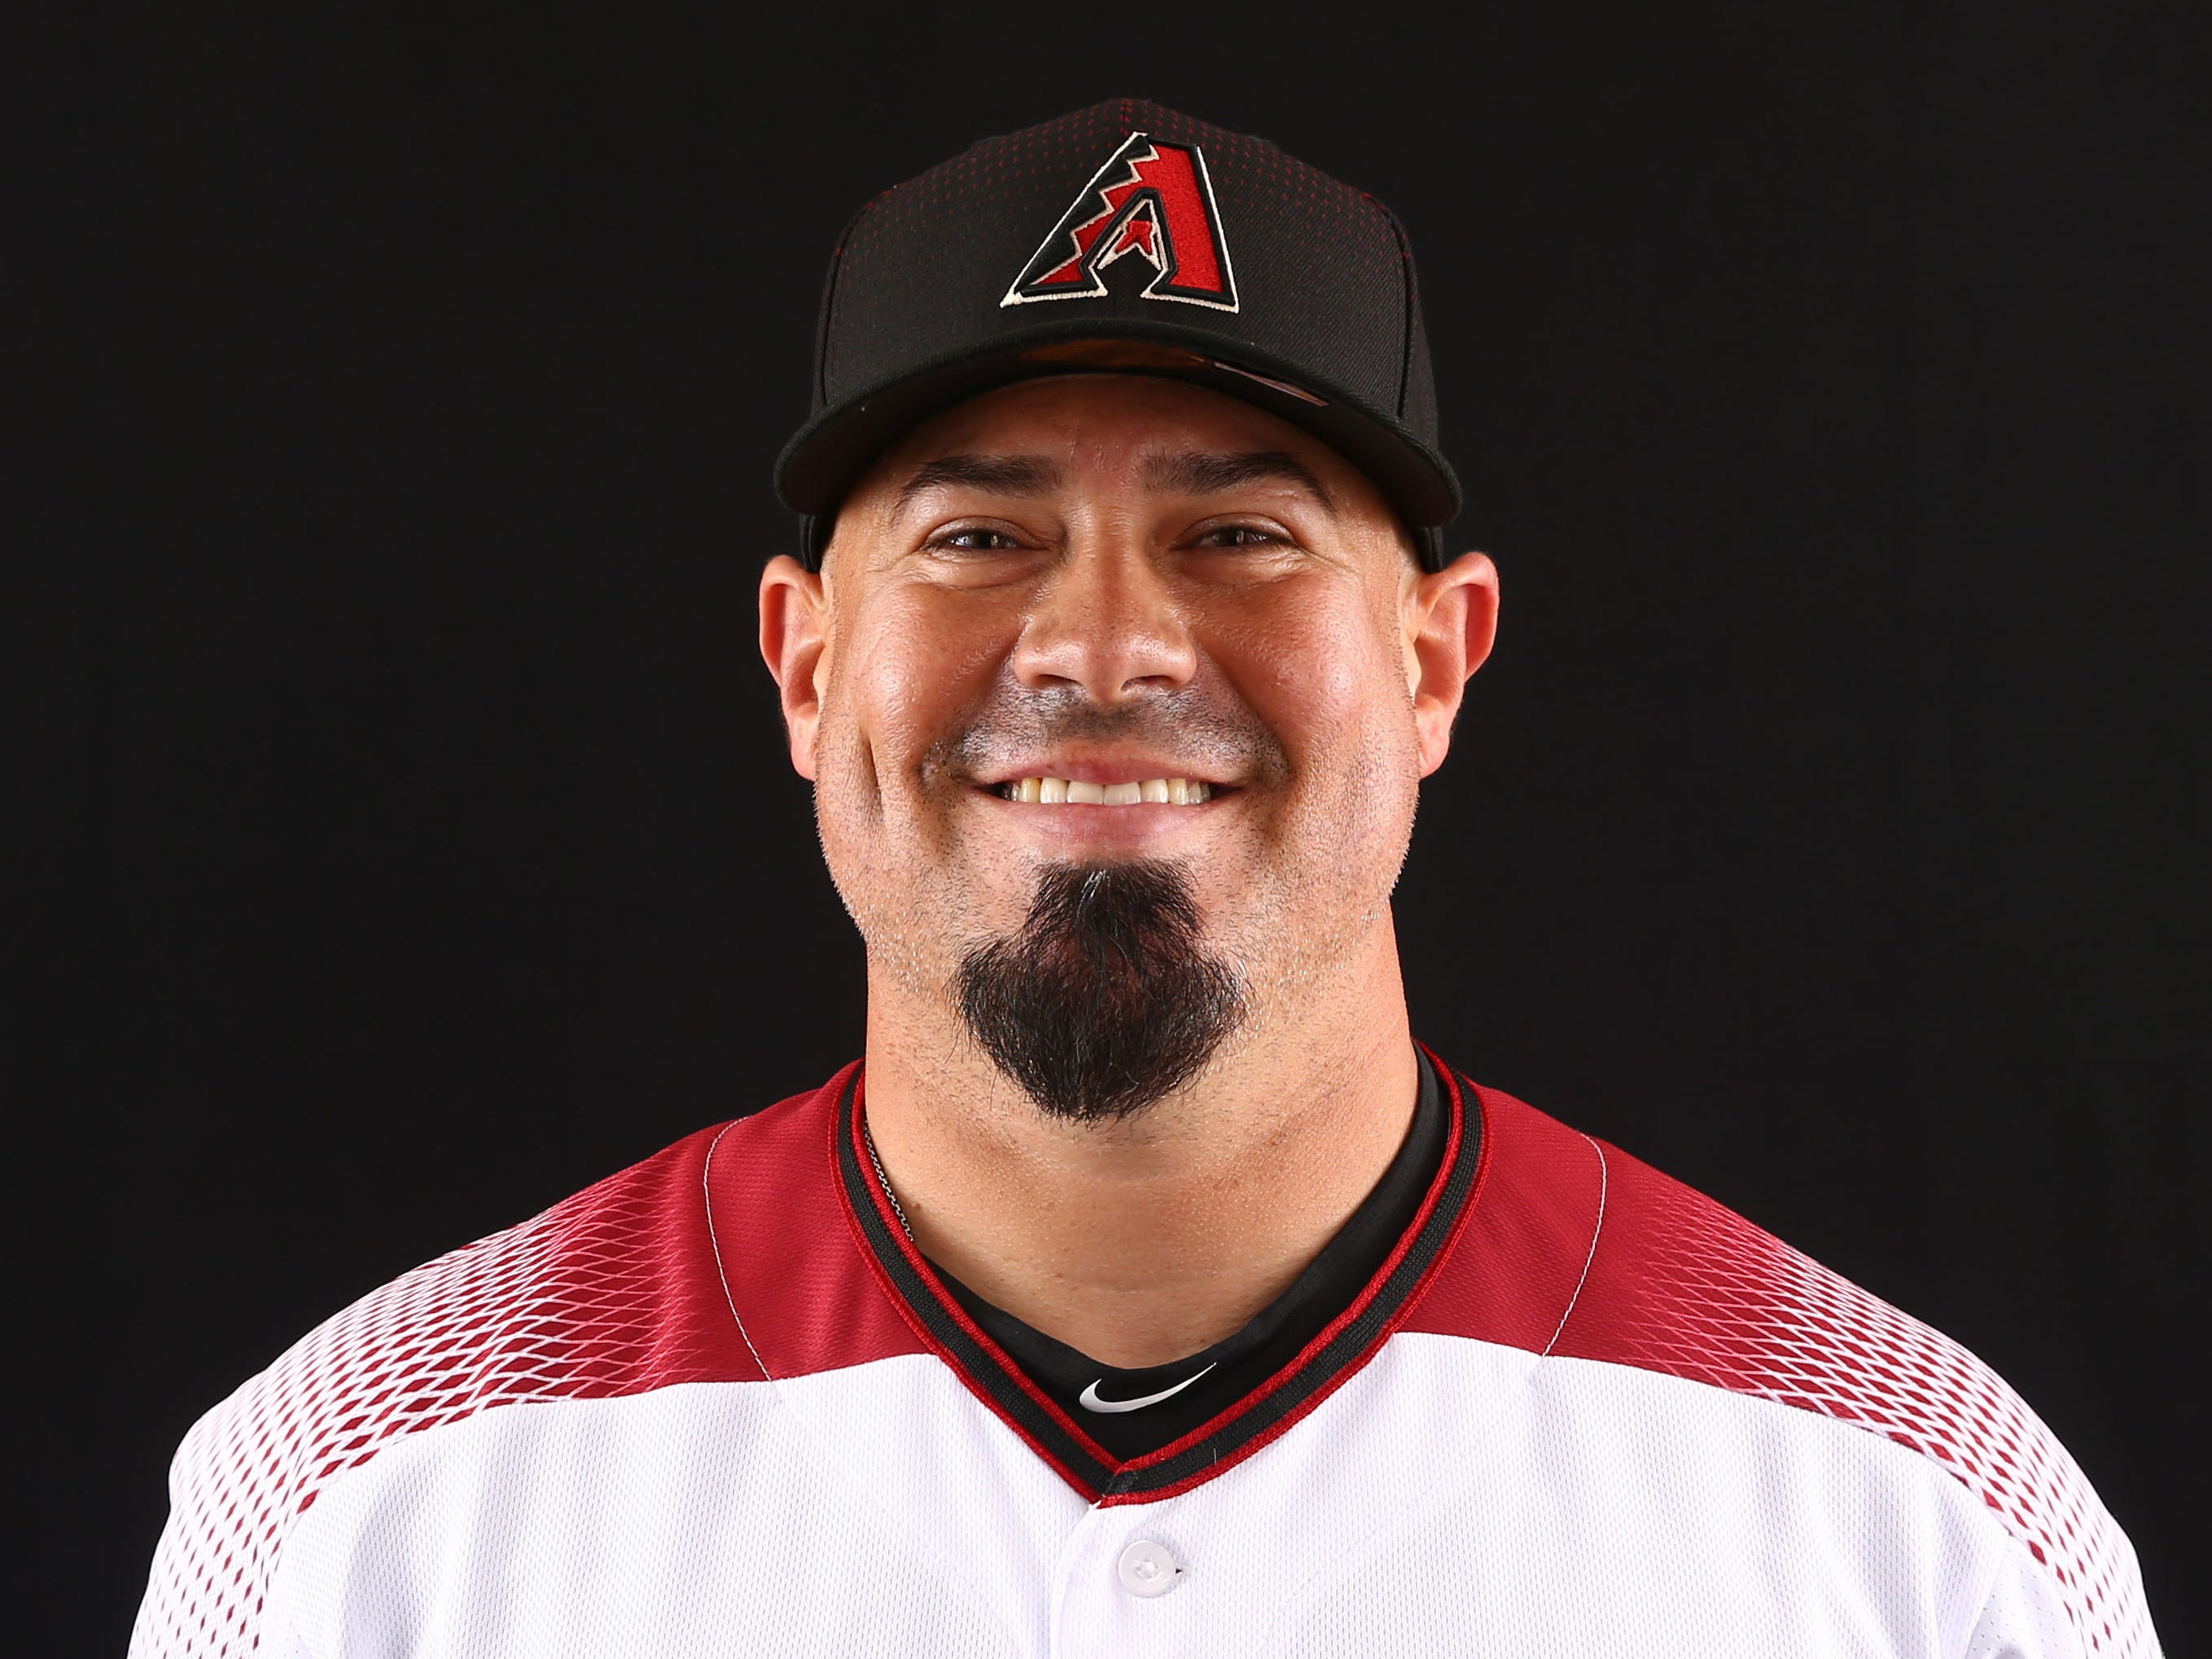 Humberto Quintero of the Arizona Diamondbacks poses for a photo during the annual Spring Training Photo Day on Feb. 20 at Salt River Fields in Scottsdale, Ariz.